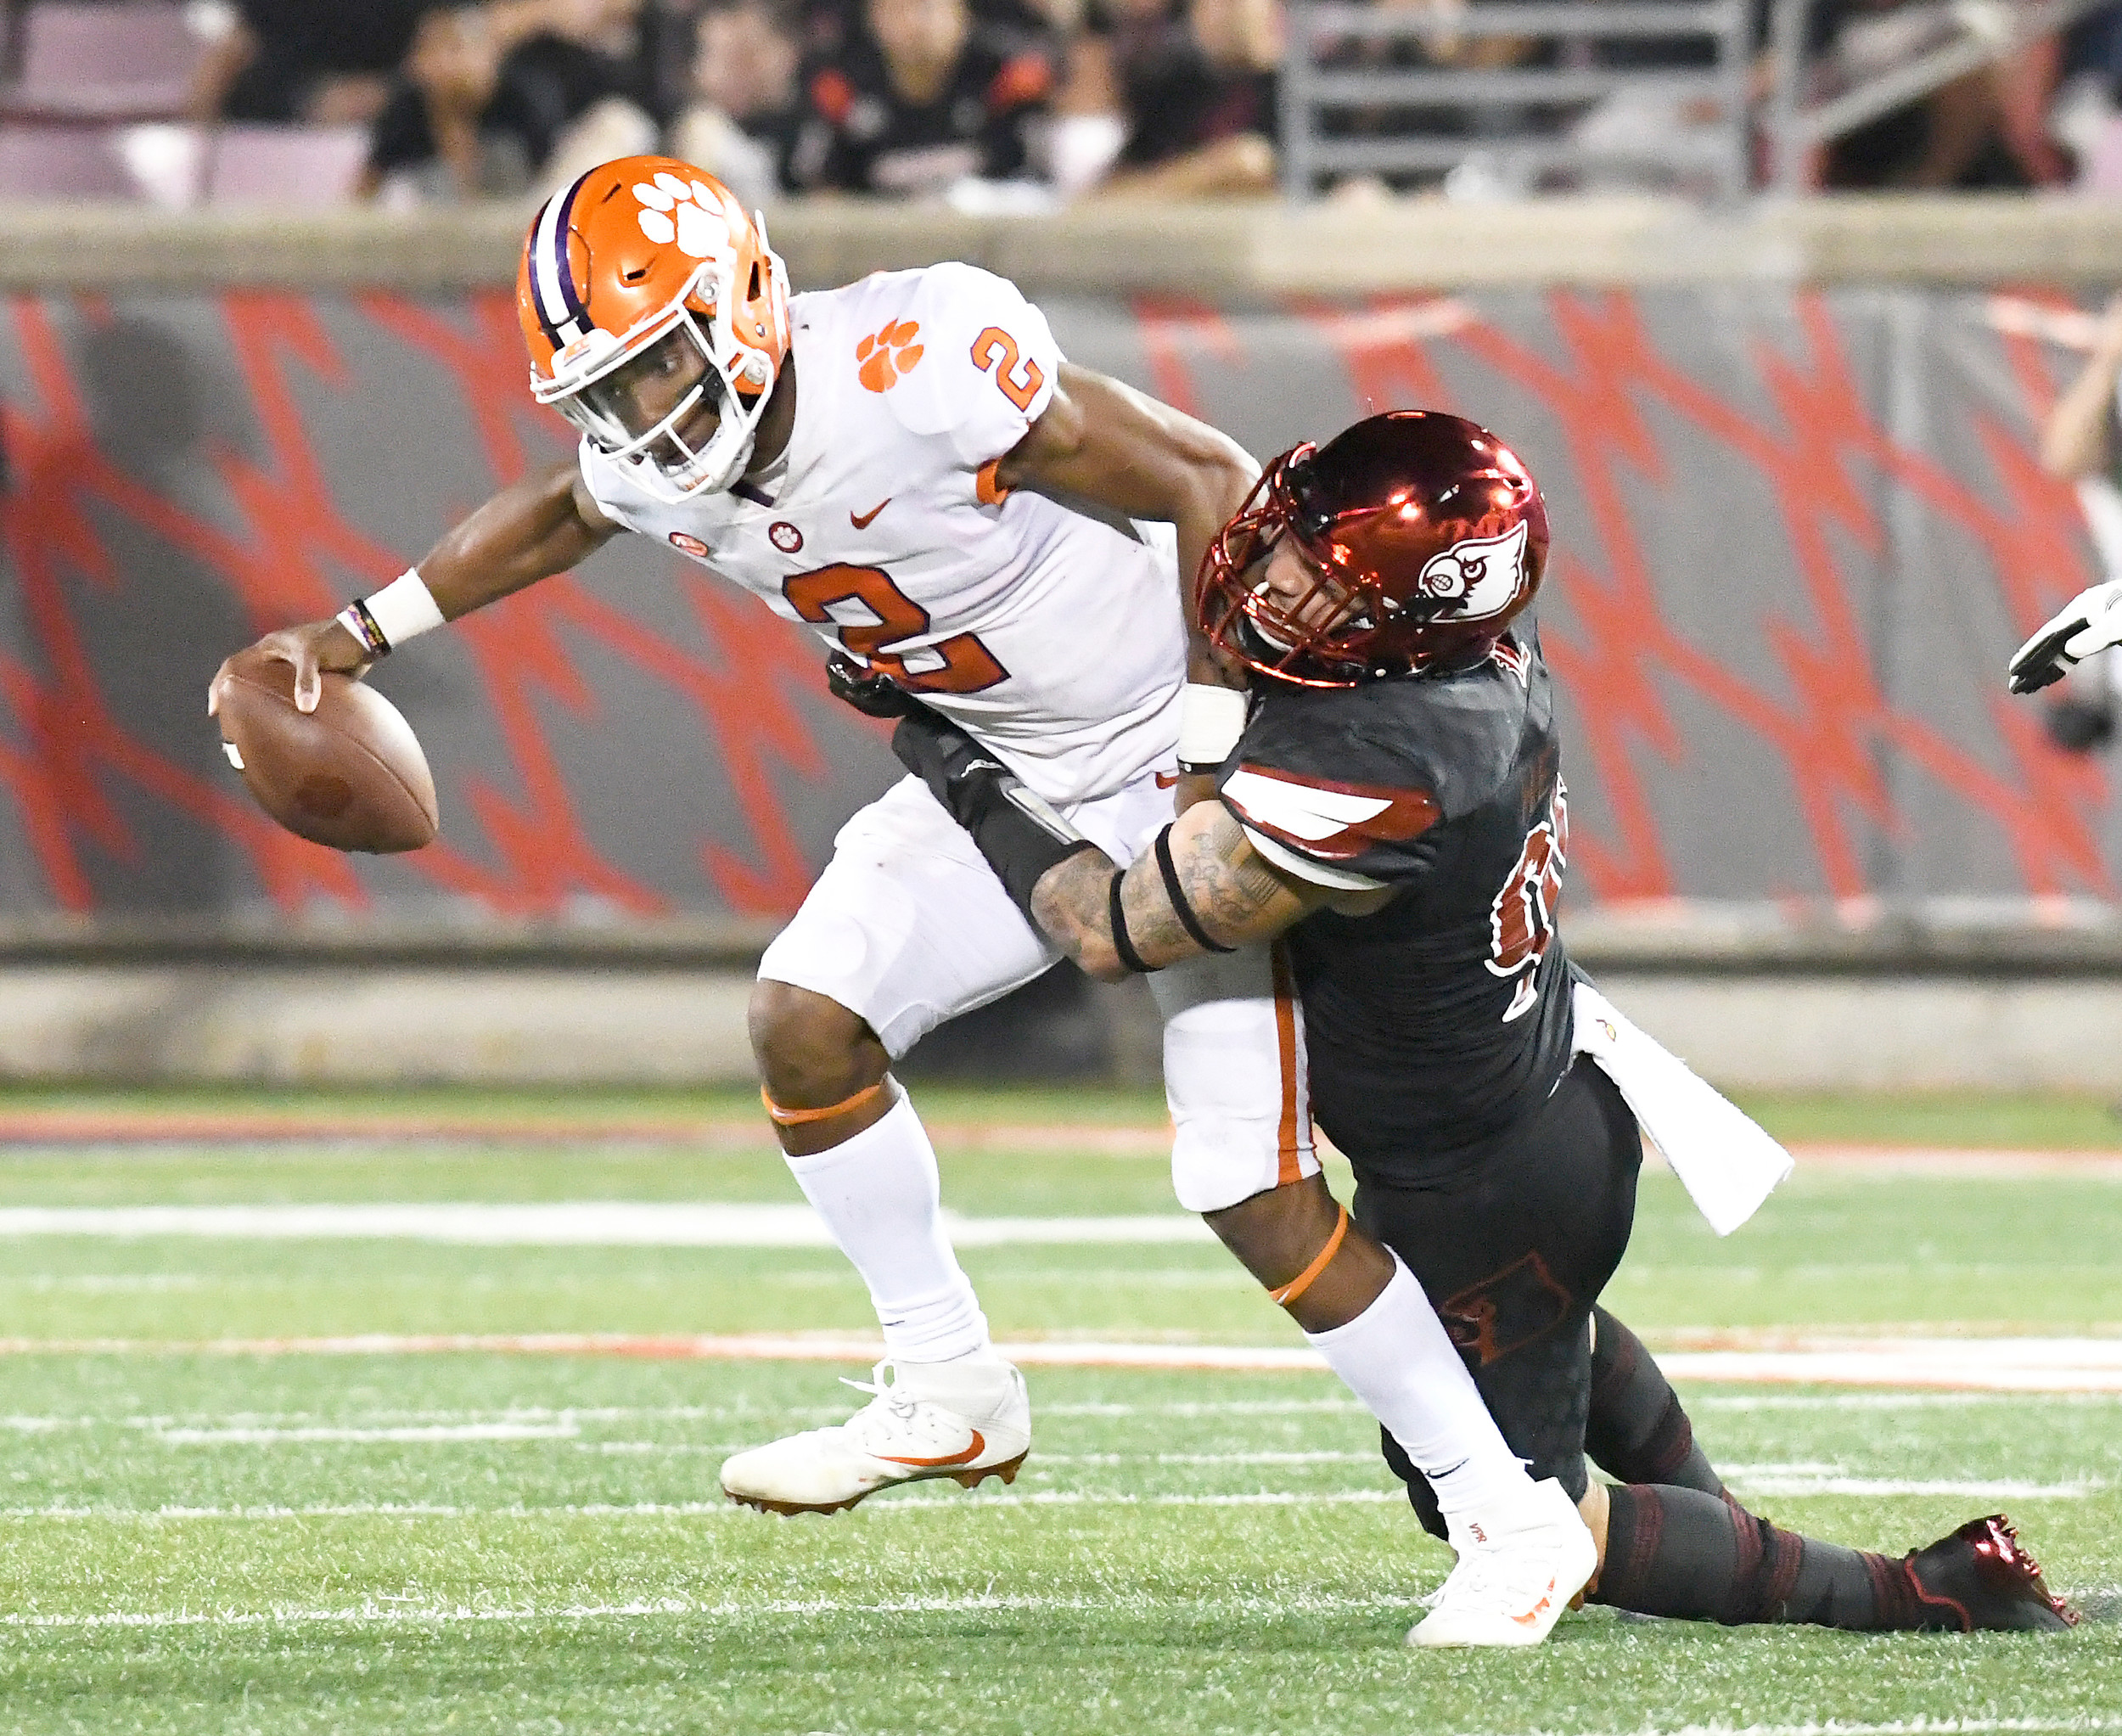 Clemson quarterback Kelly Bryant (2) has followed a similar path as his predecessor with the Tigers, Deshaun Watson. Bryant's play so far has him headed to where Watson went the past two years, the Heisman Trophy stage and the College Football Playoff.